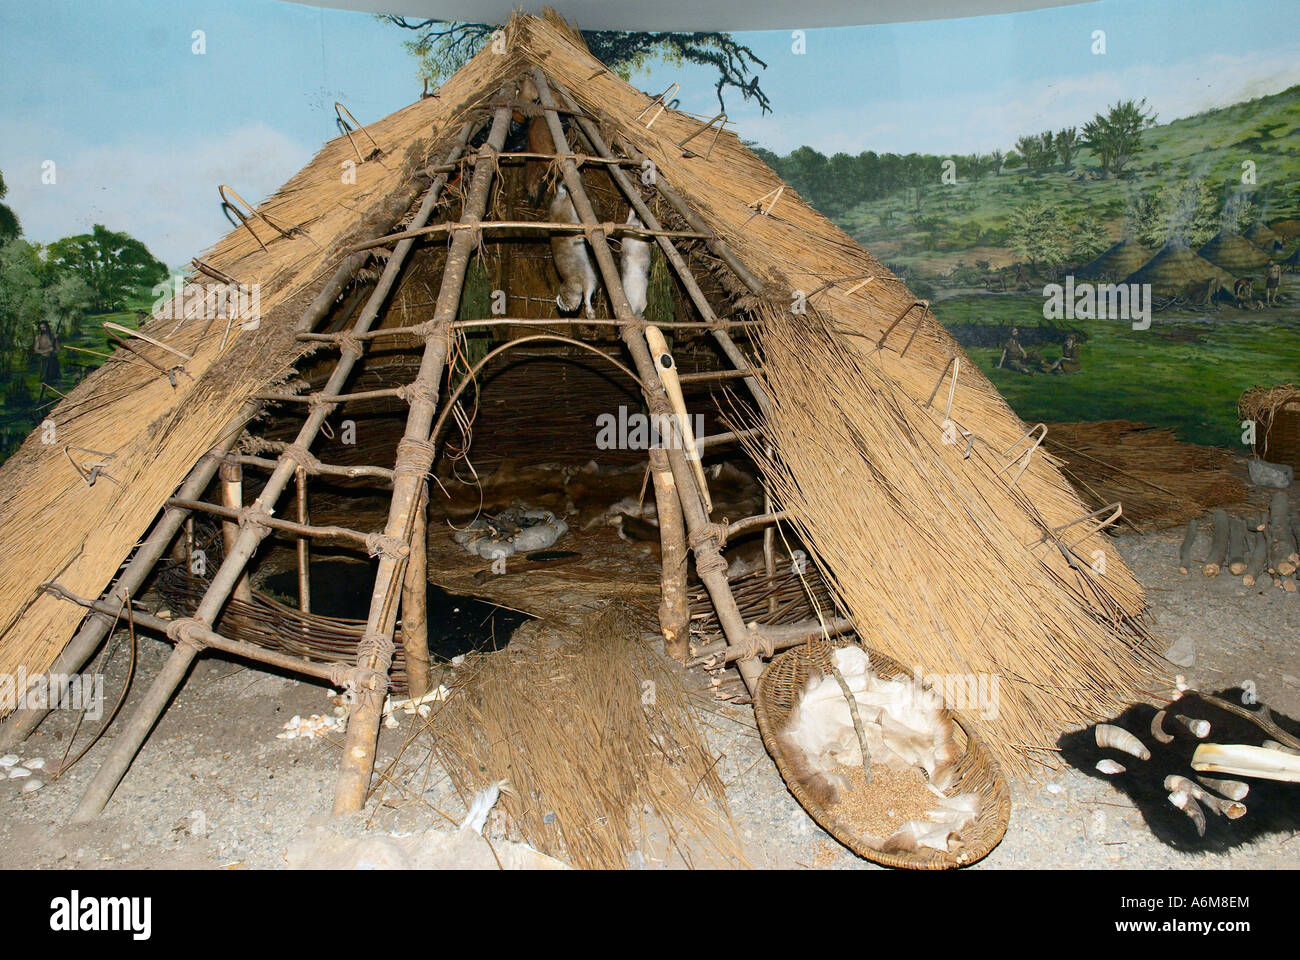 A reconstruction of a neolithic dwelling at the Newgrange Visitor Center - Stock Image